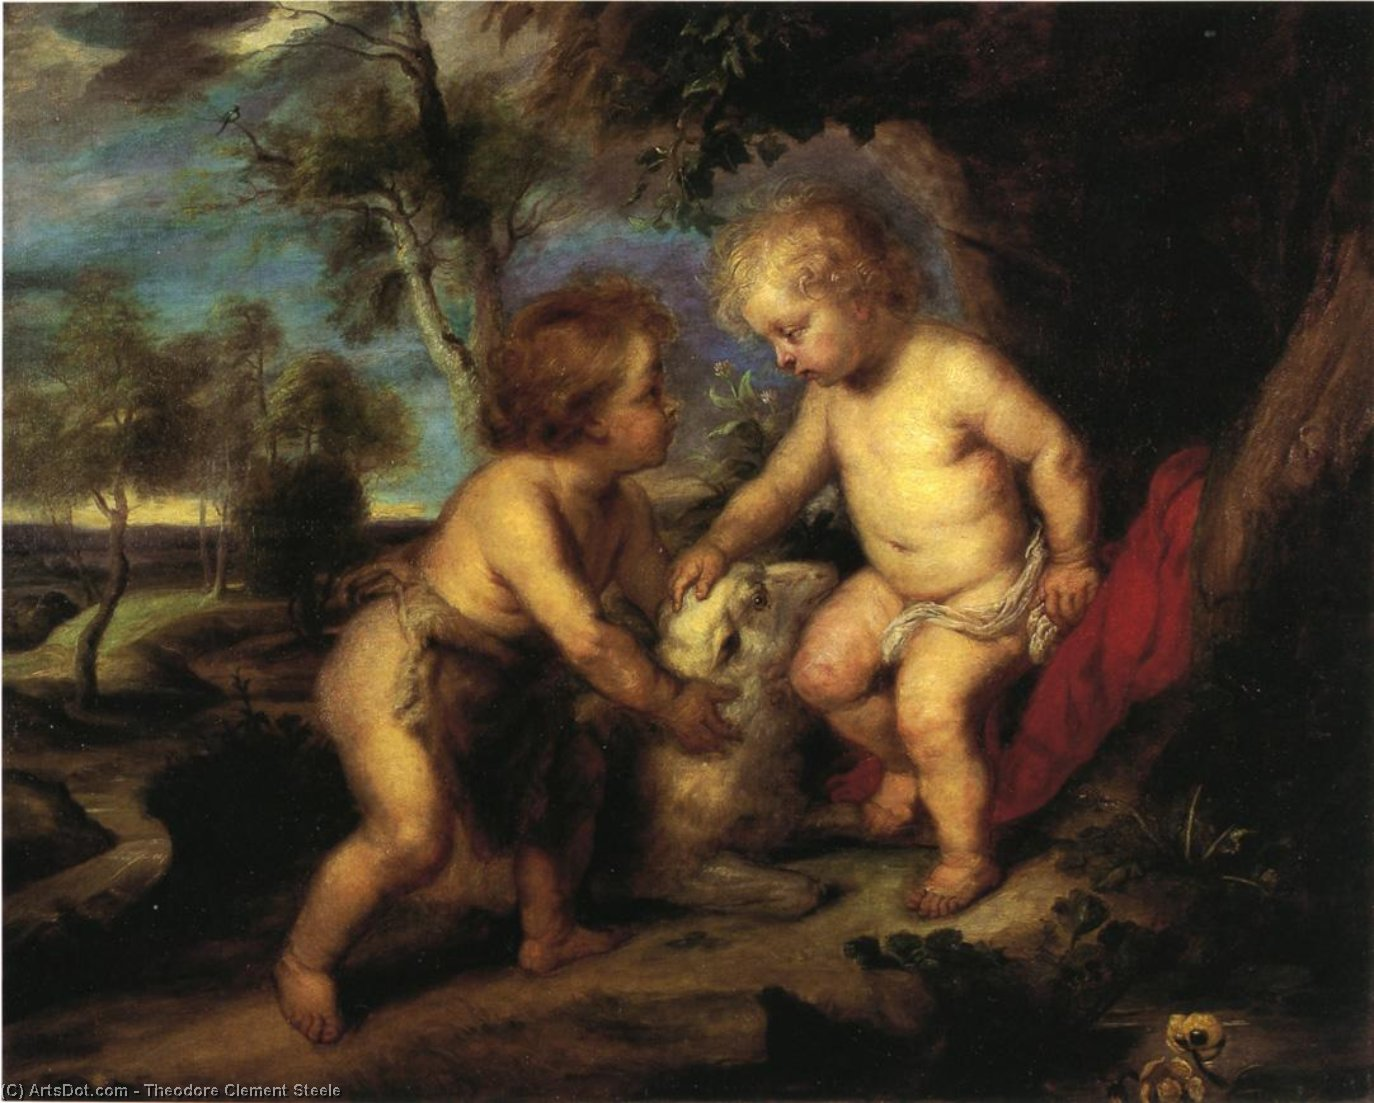 Wikioo.org - The Encyclopedia of Fine Arts - Painting, Artwork by Theodore Clement Steele - The Christ Child and the Infant St. John after Rubens